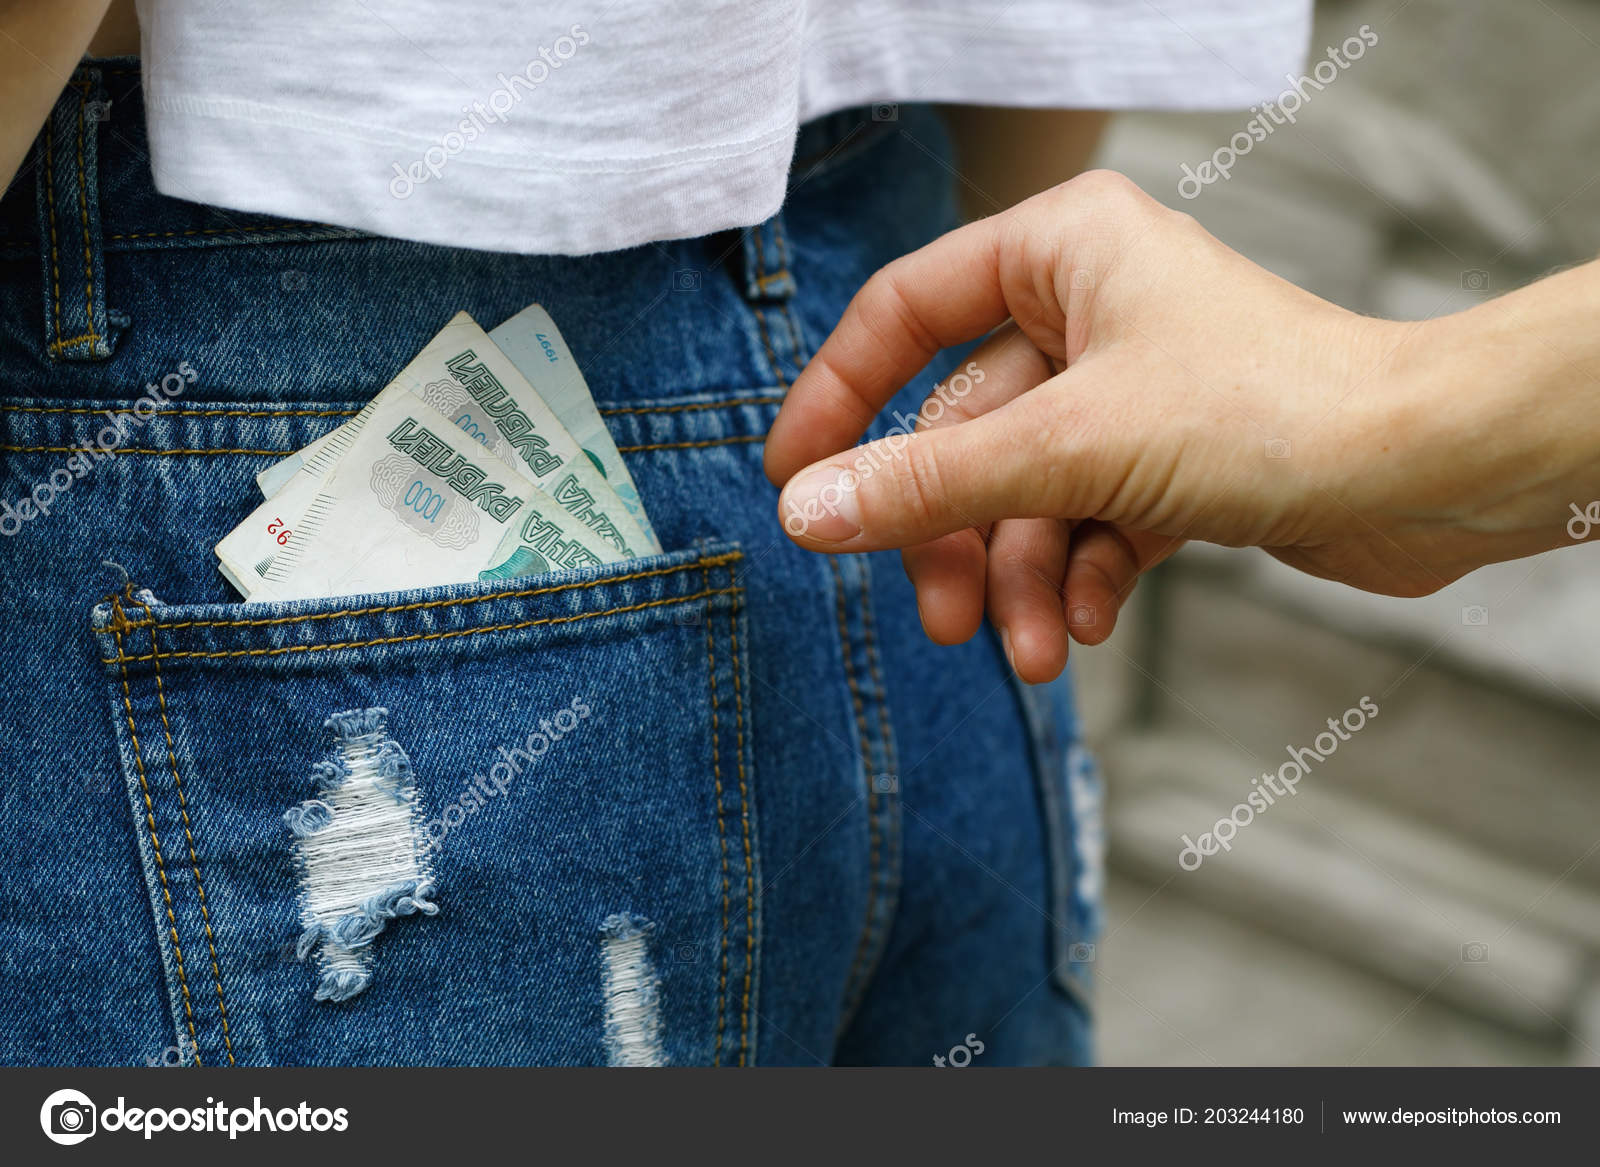 Committing Crime Street Stealing Money Back Your Jeans